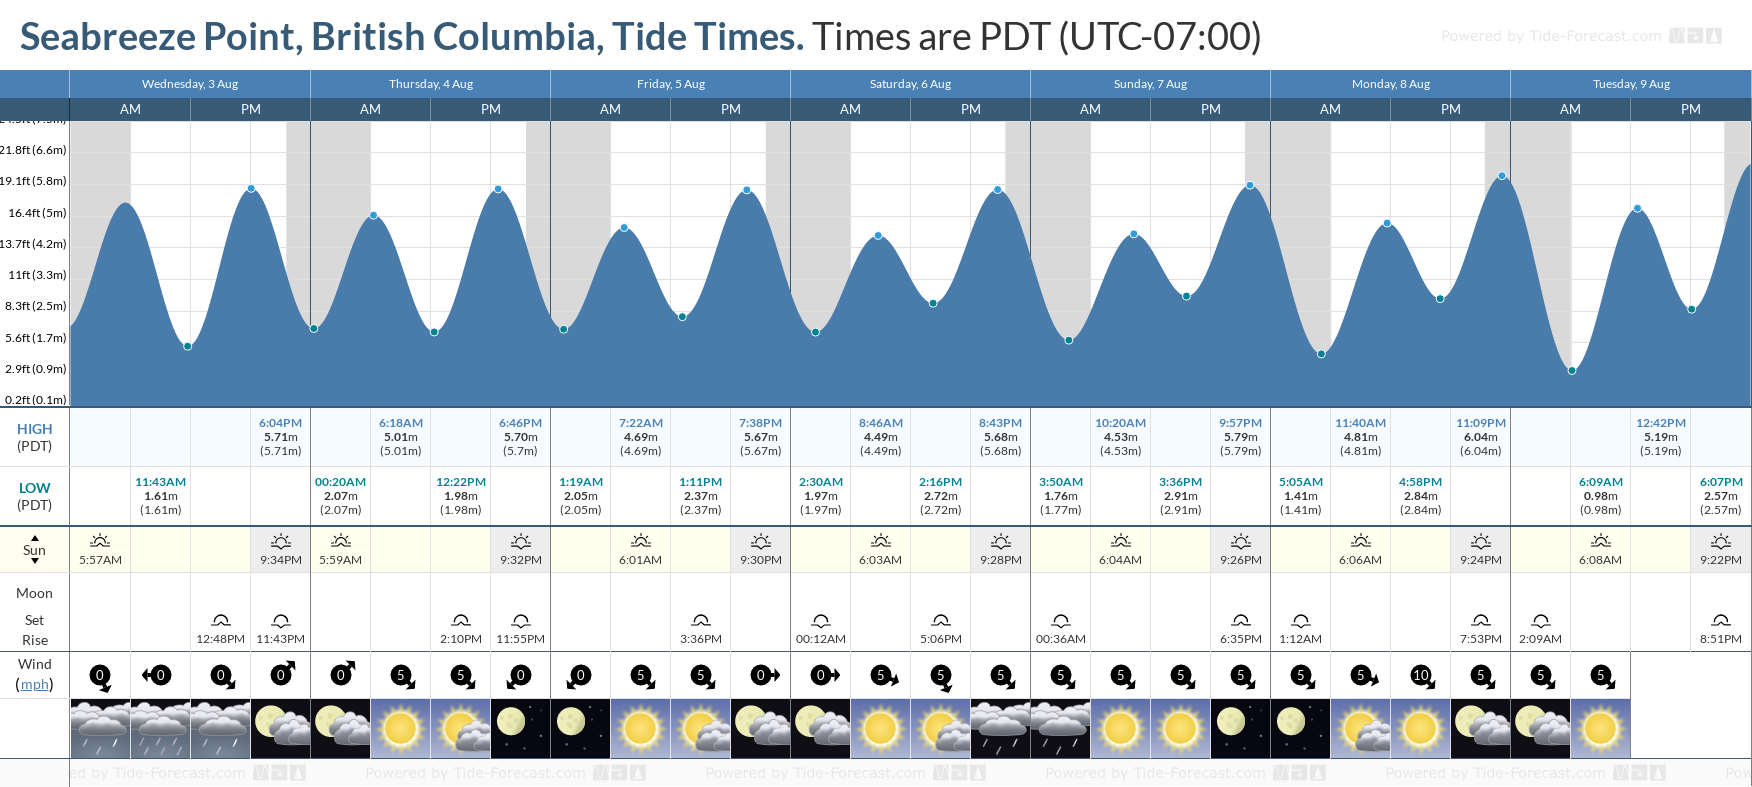 Seabreeze Point, British Columbia Tide Chart including high and low tide tide times for the next 7 days